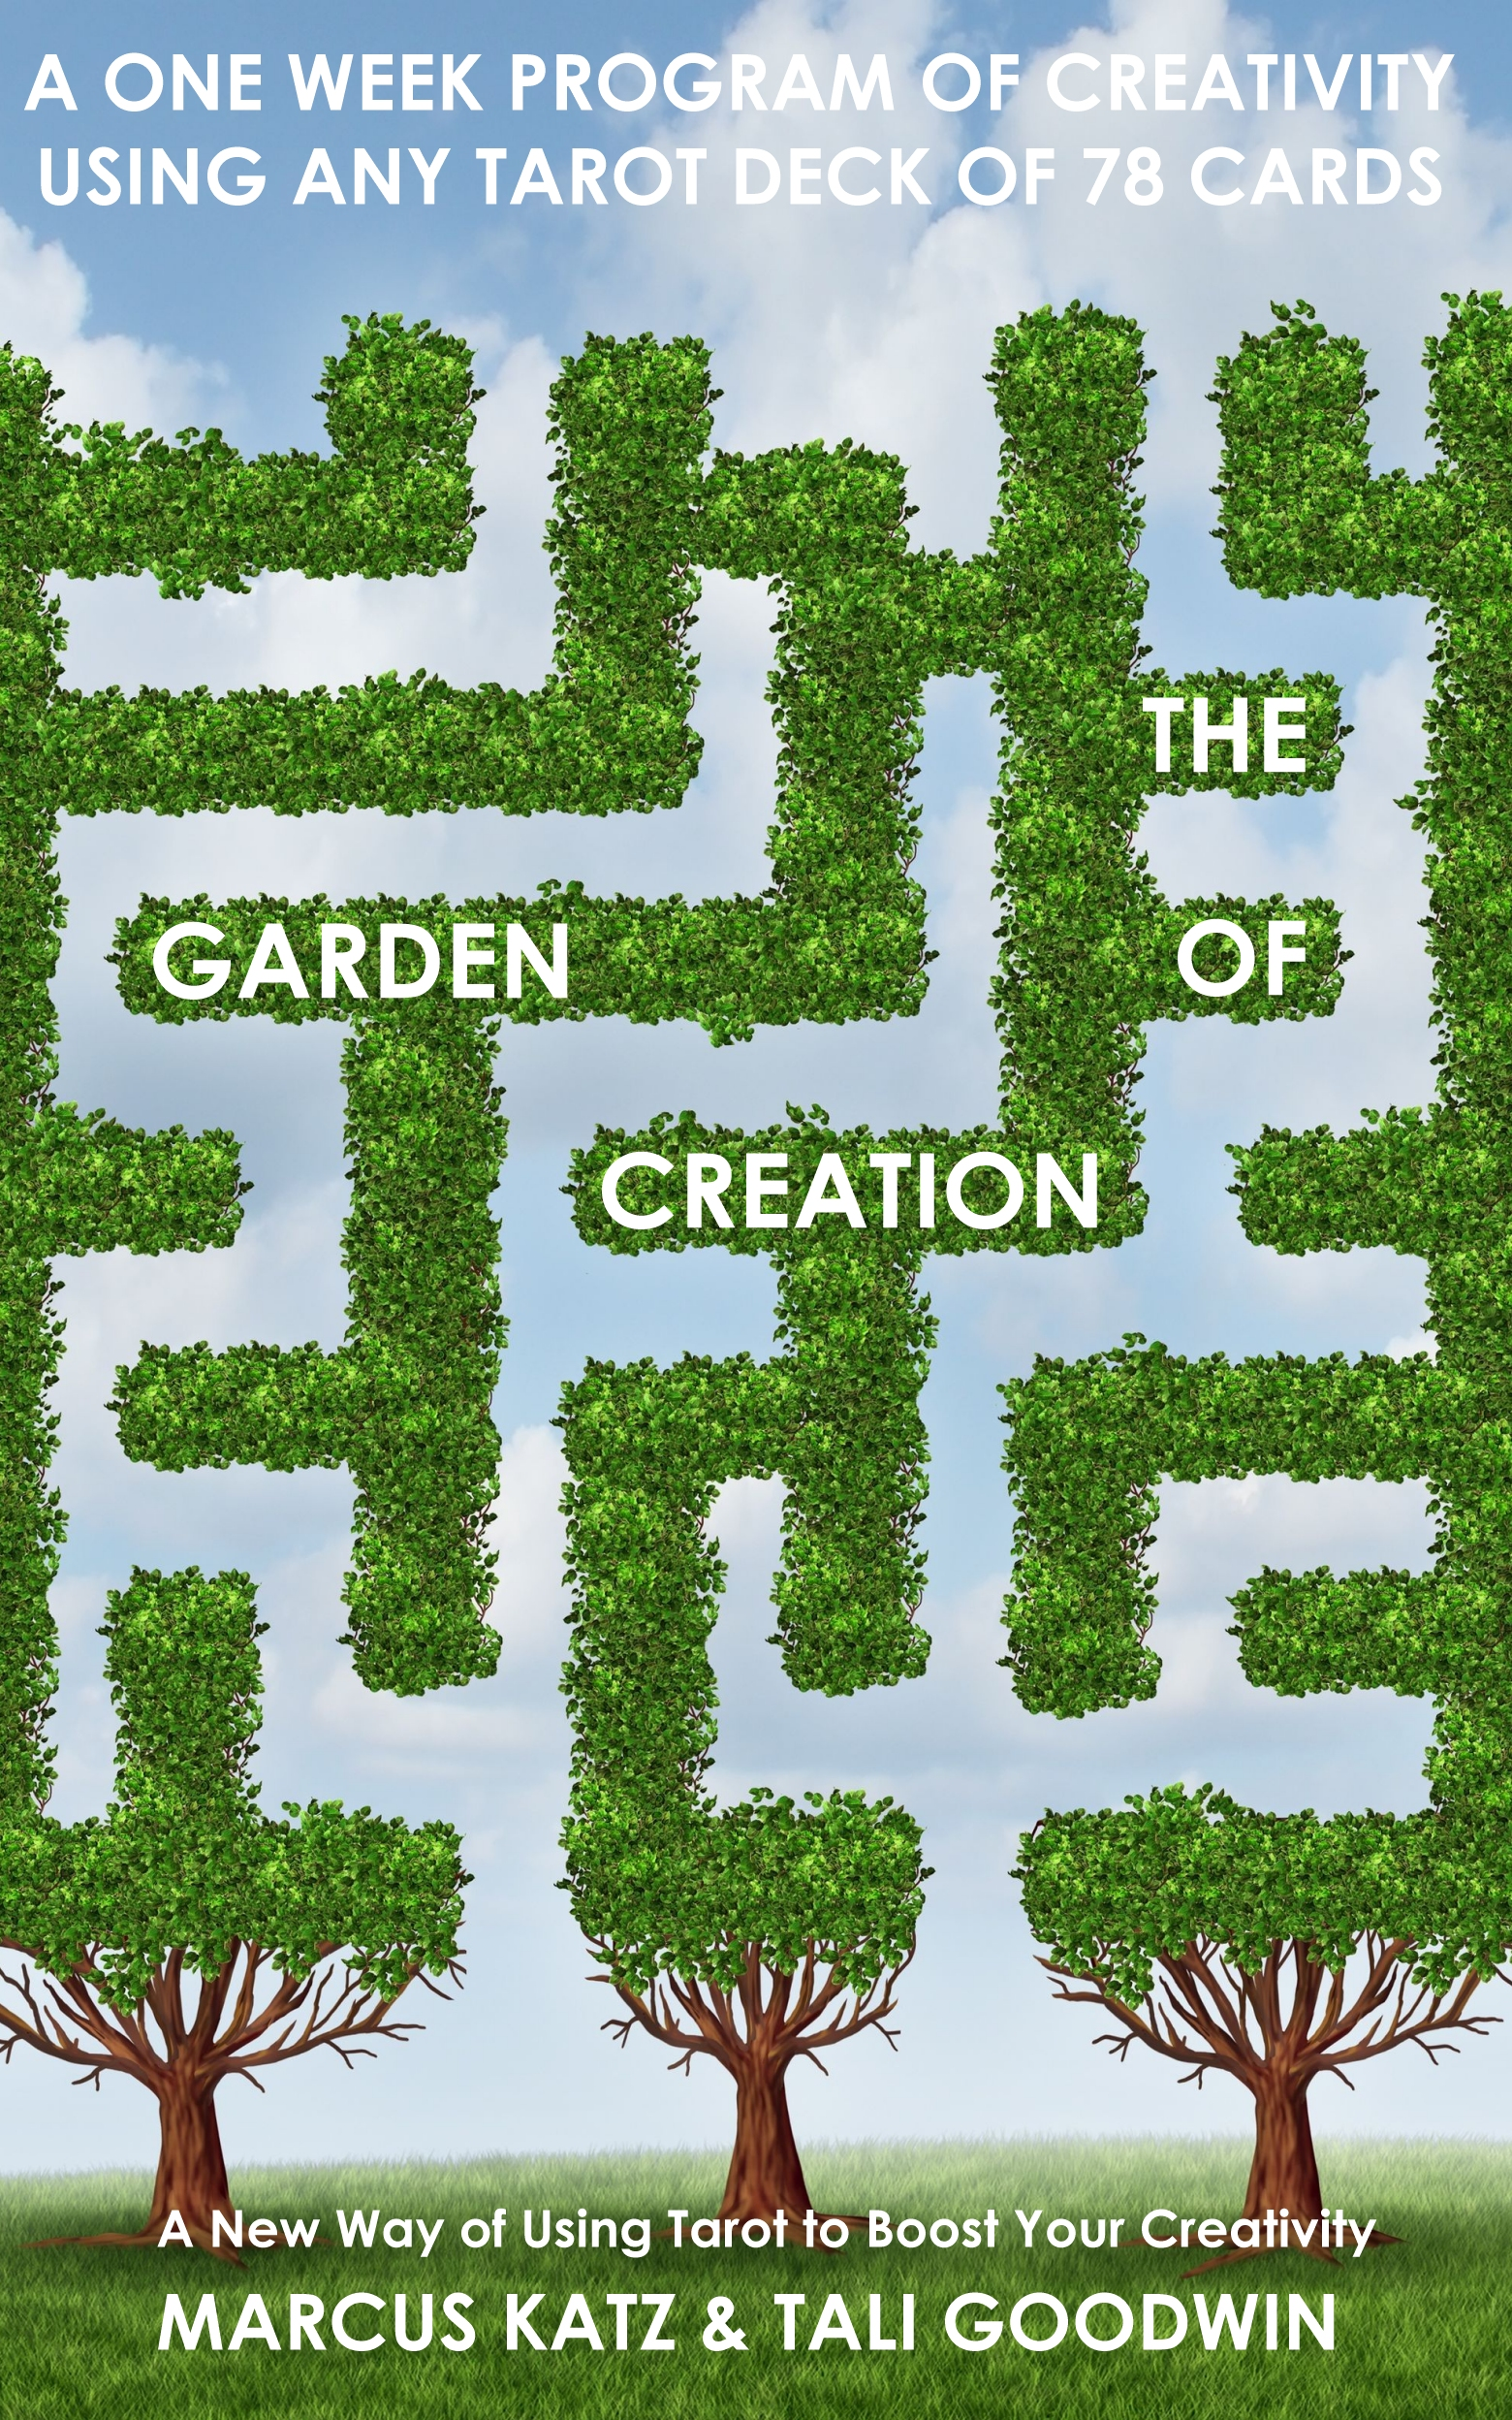 THE GARDEN OF CREATION